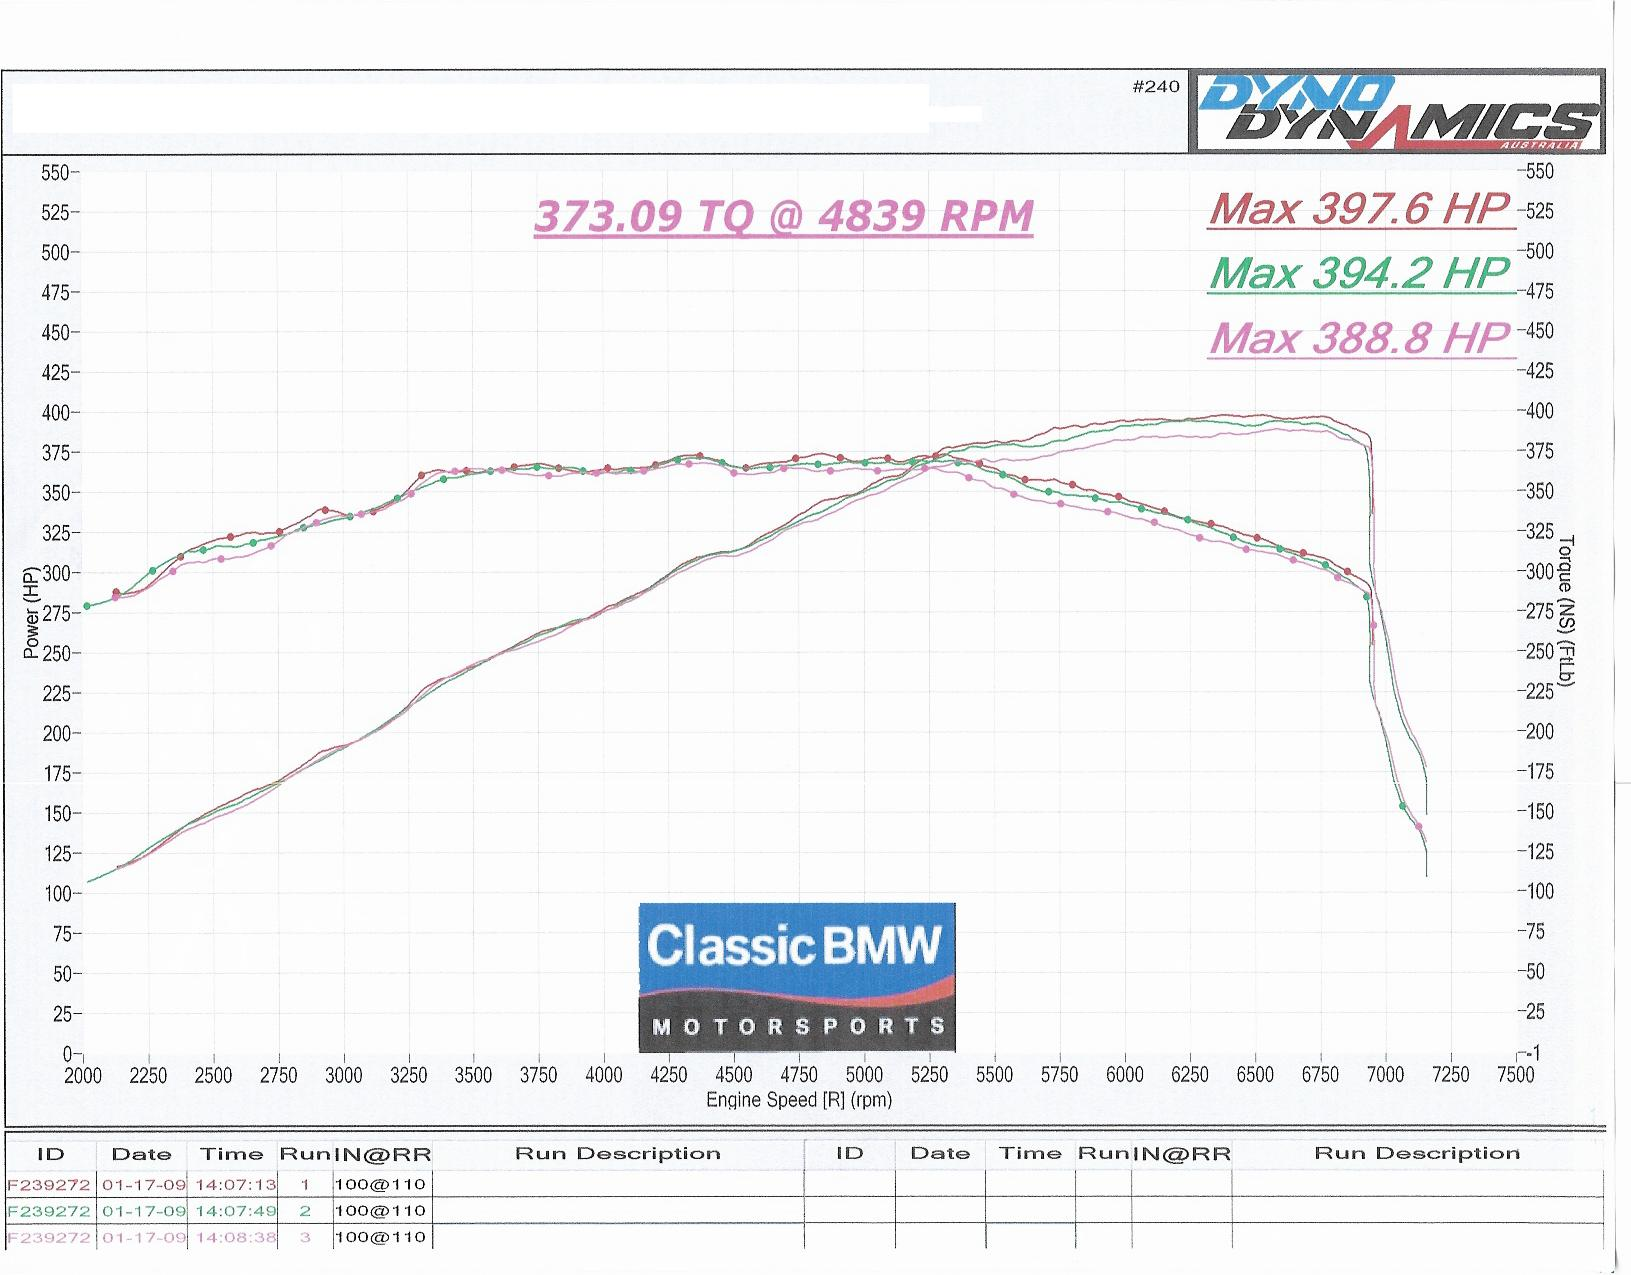 Mercedes-Benz CLK63 AMG Dyno Graph Results